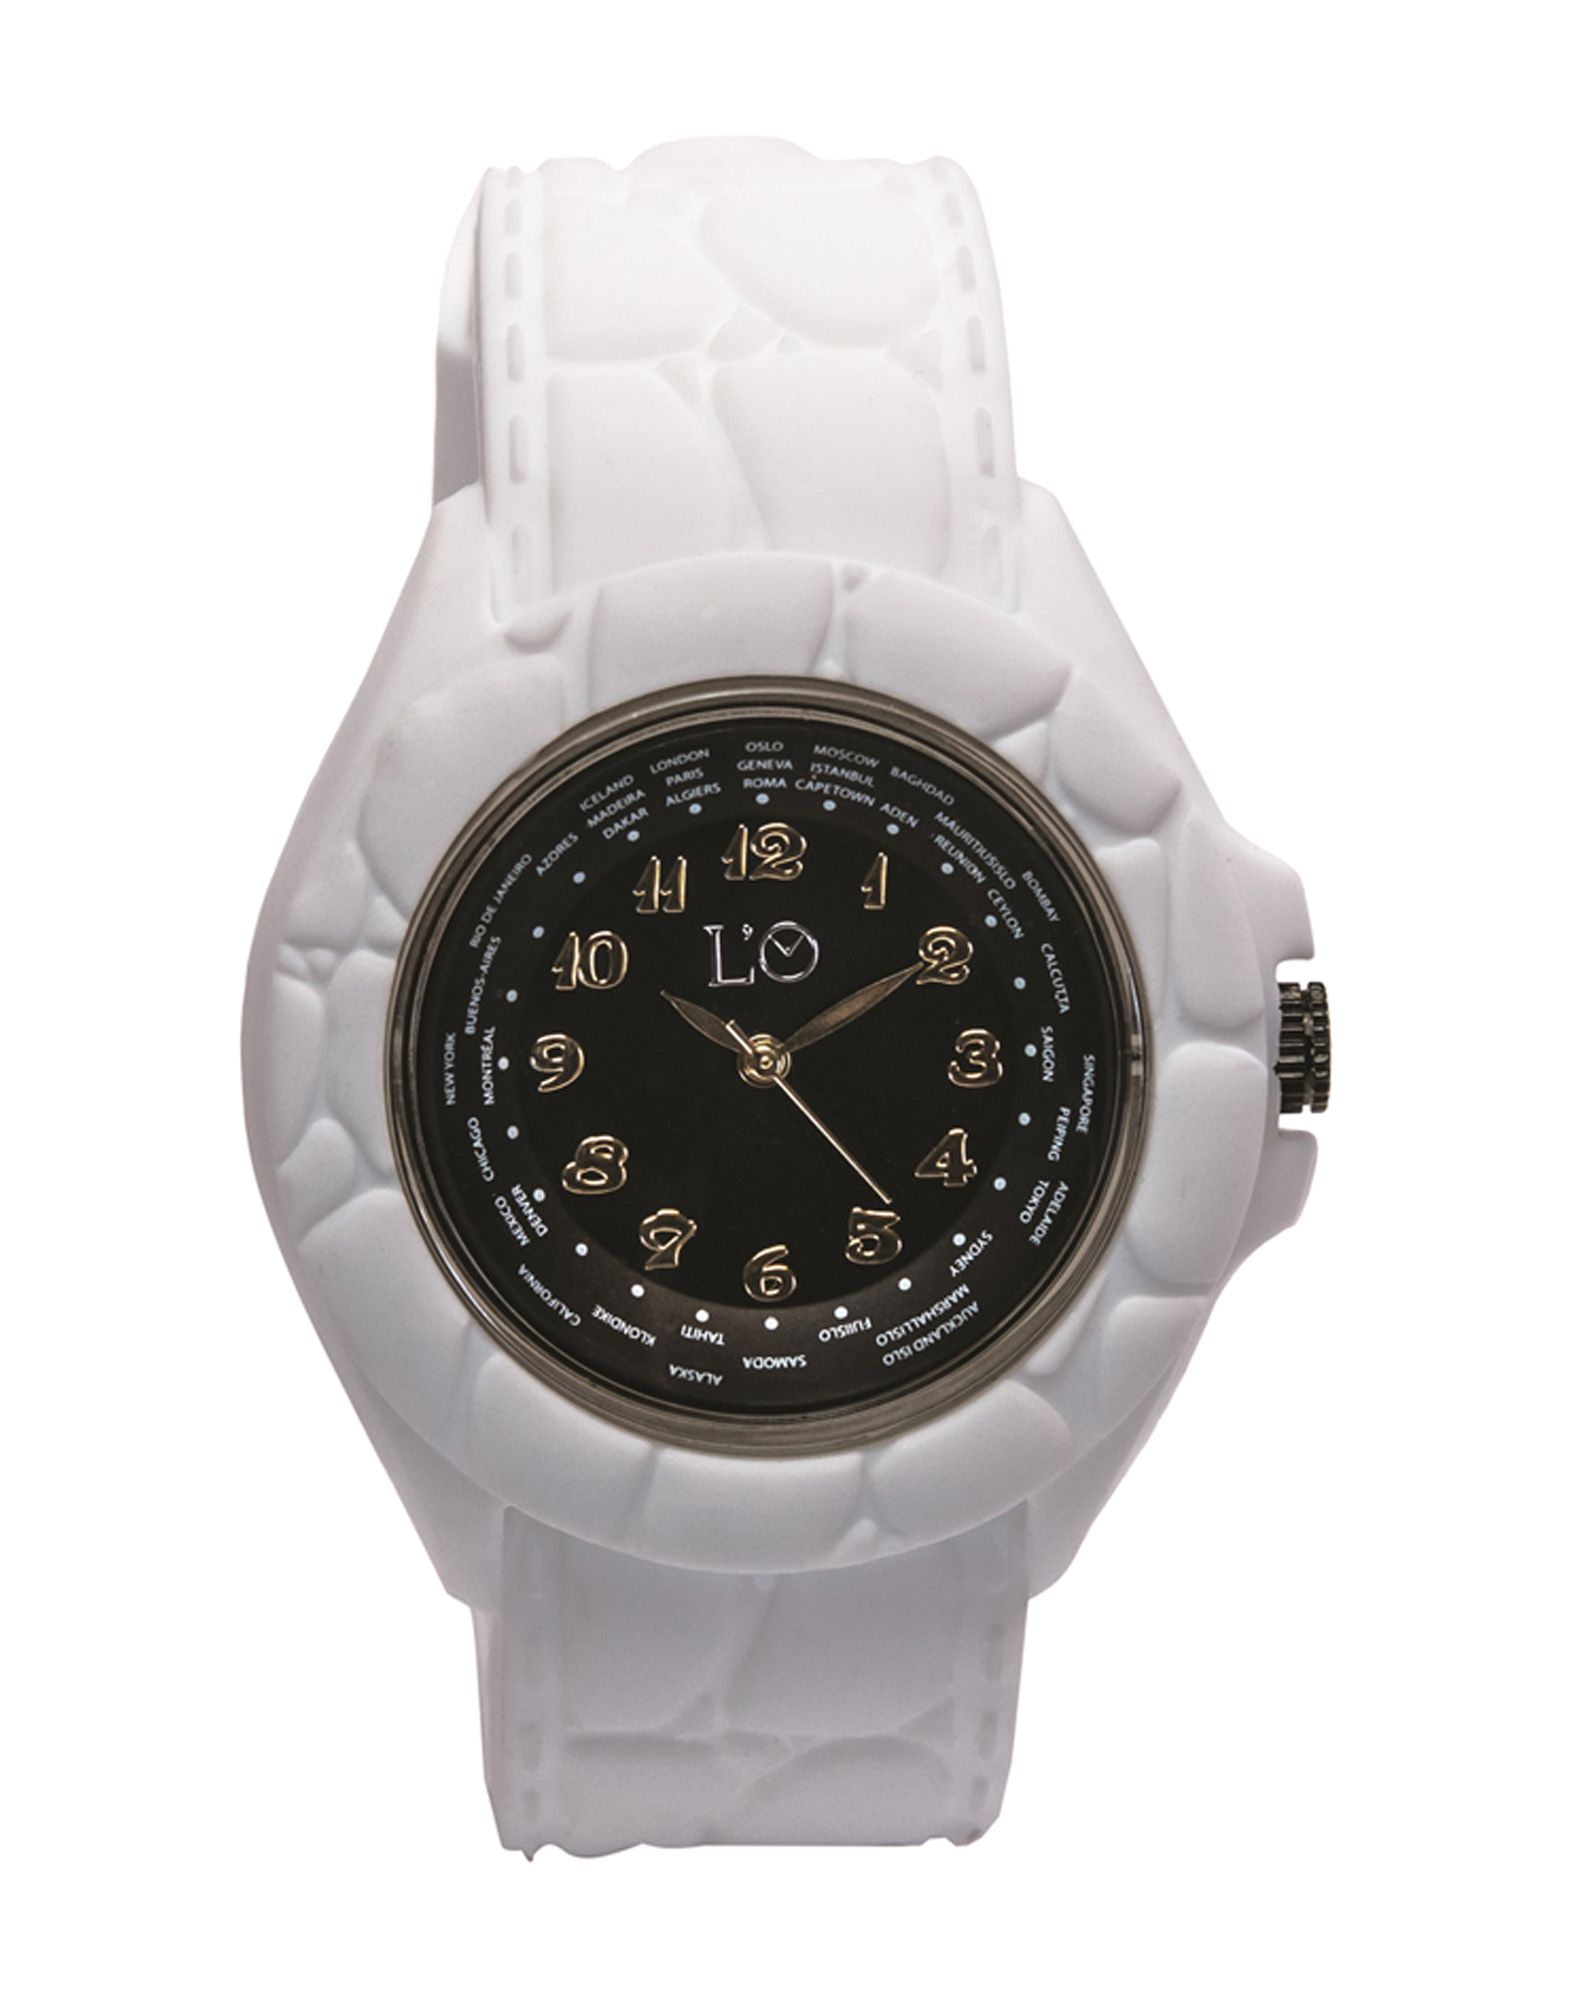 Yoox Fossil Jacqueline Light Brown Leather Strap Watch Es 4086